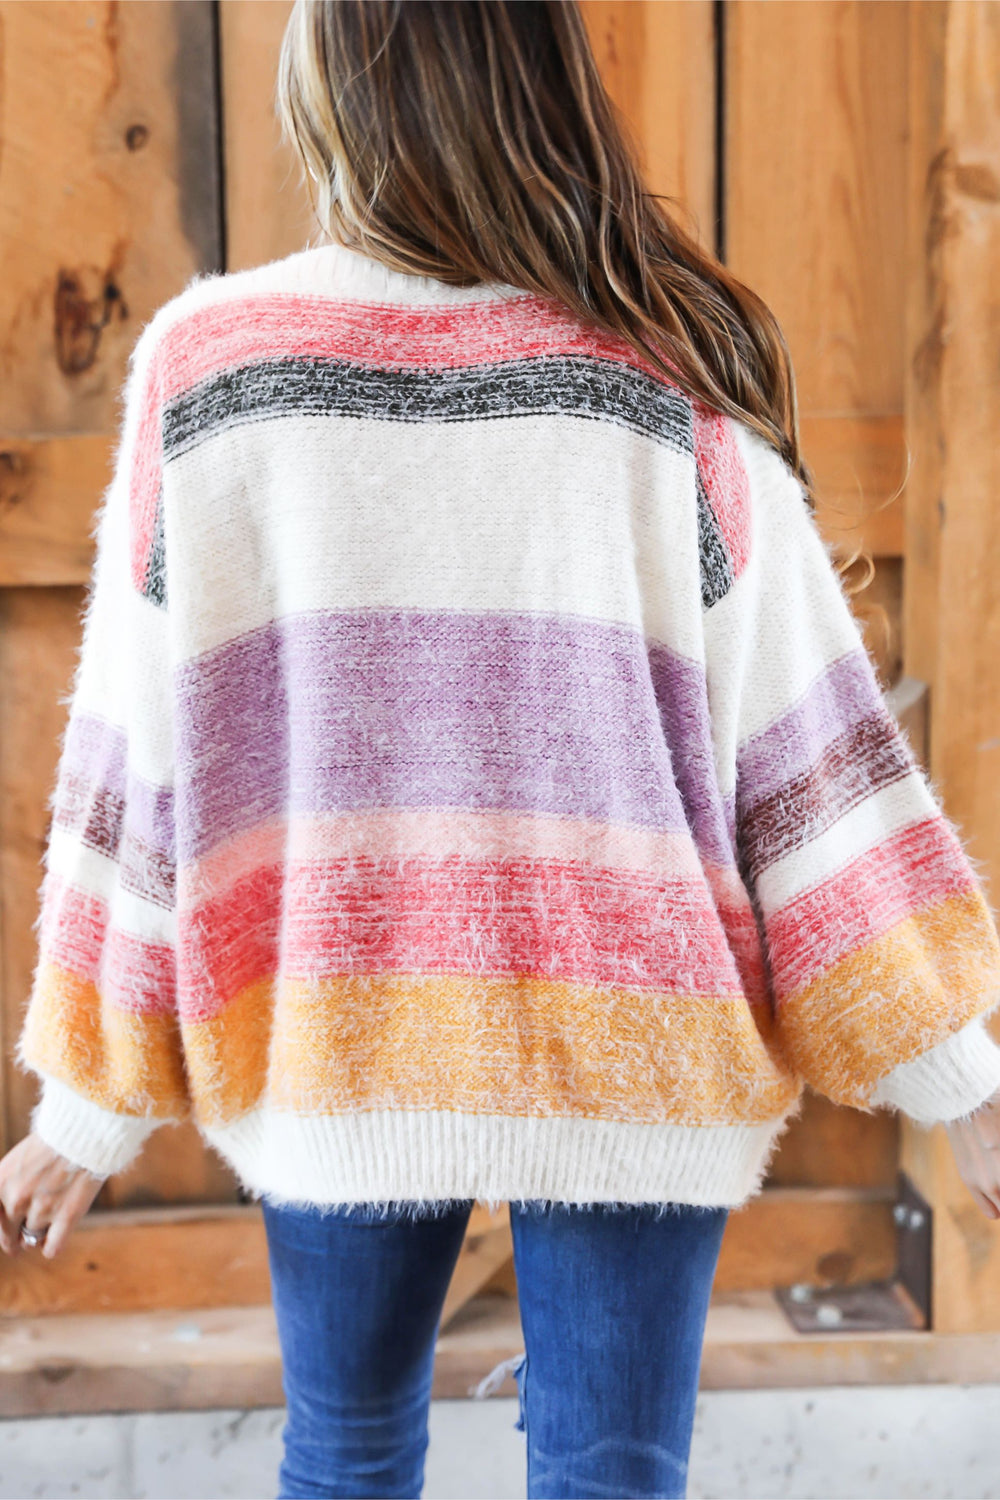 Pastel Dreams Sweater Inspired By Pam Carper x Kendra Scott